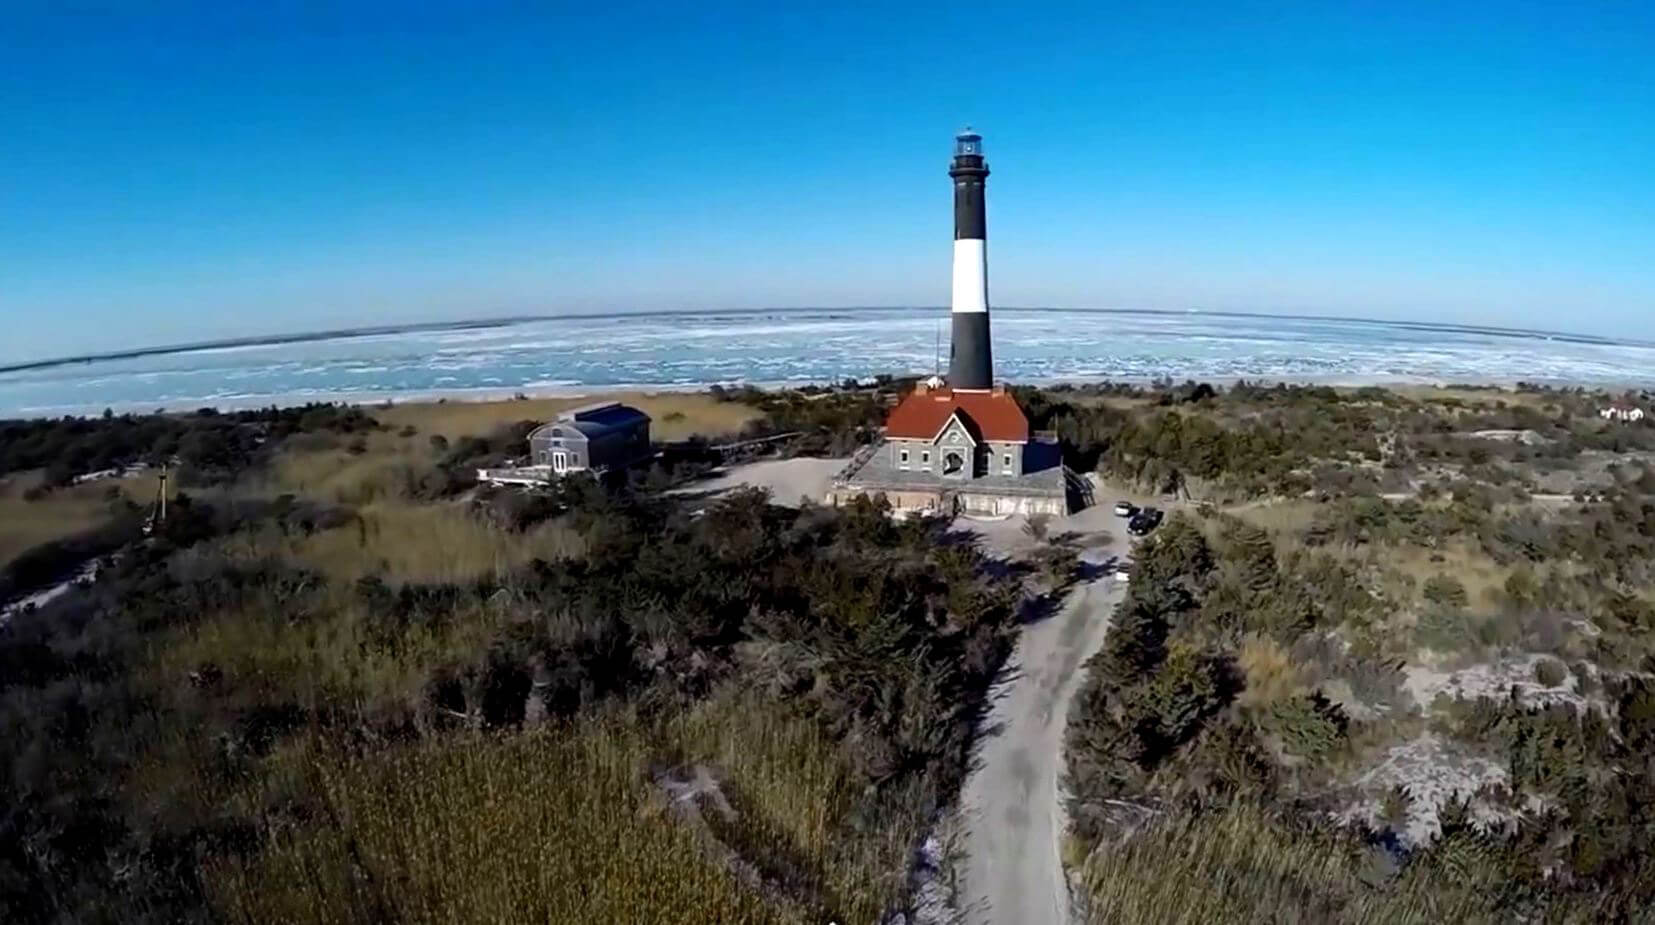 Fire Island Lighthouse seen from the sky